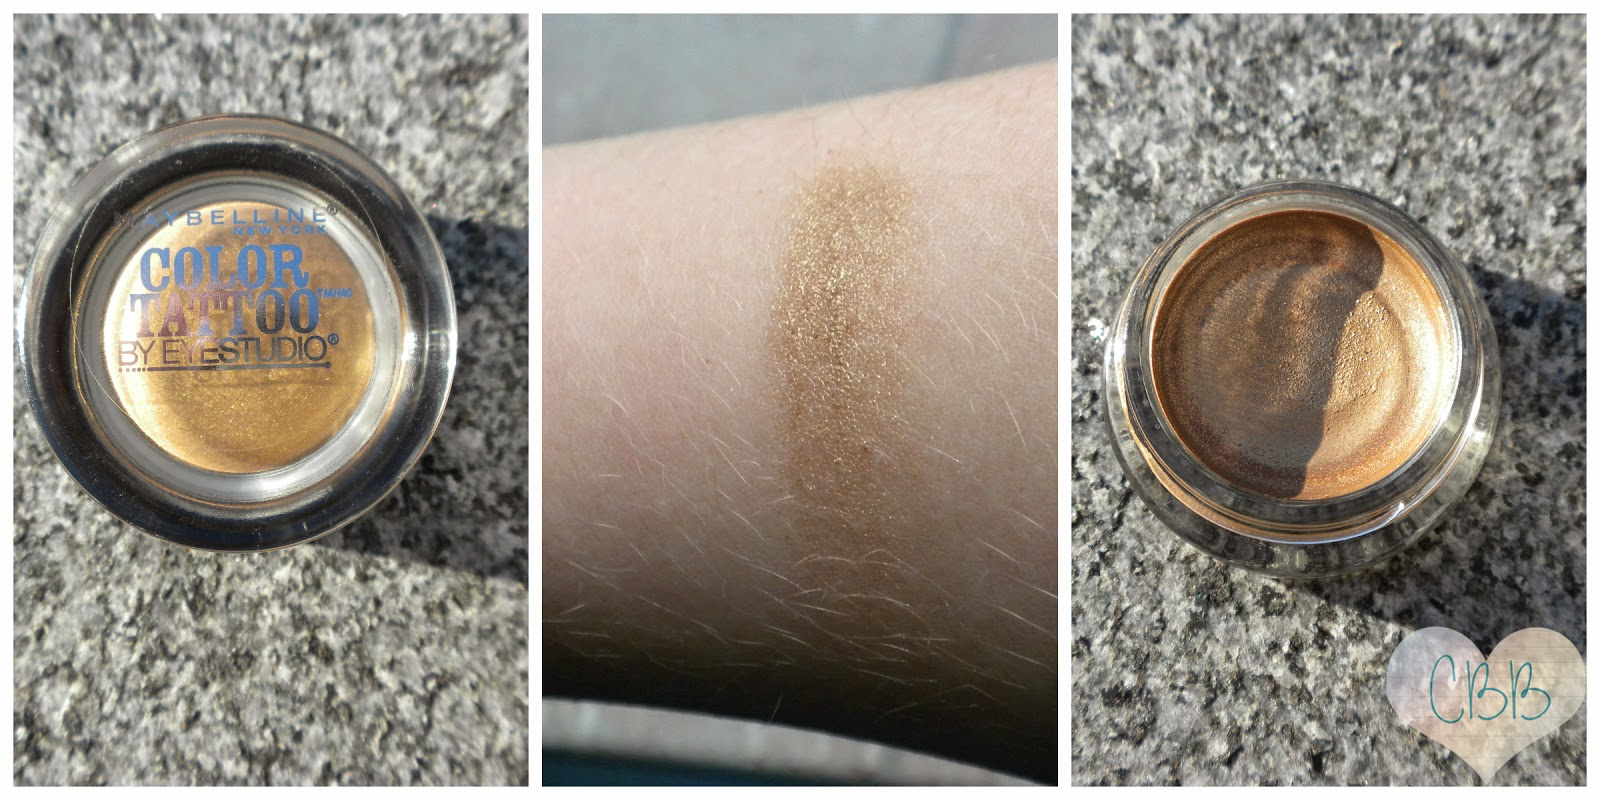 MAYBELLINE Eye Studio Color Tattoo Eyeshadow in Bold Gold ($7)